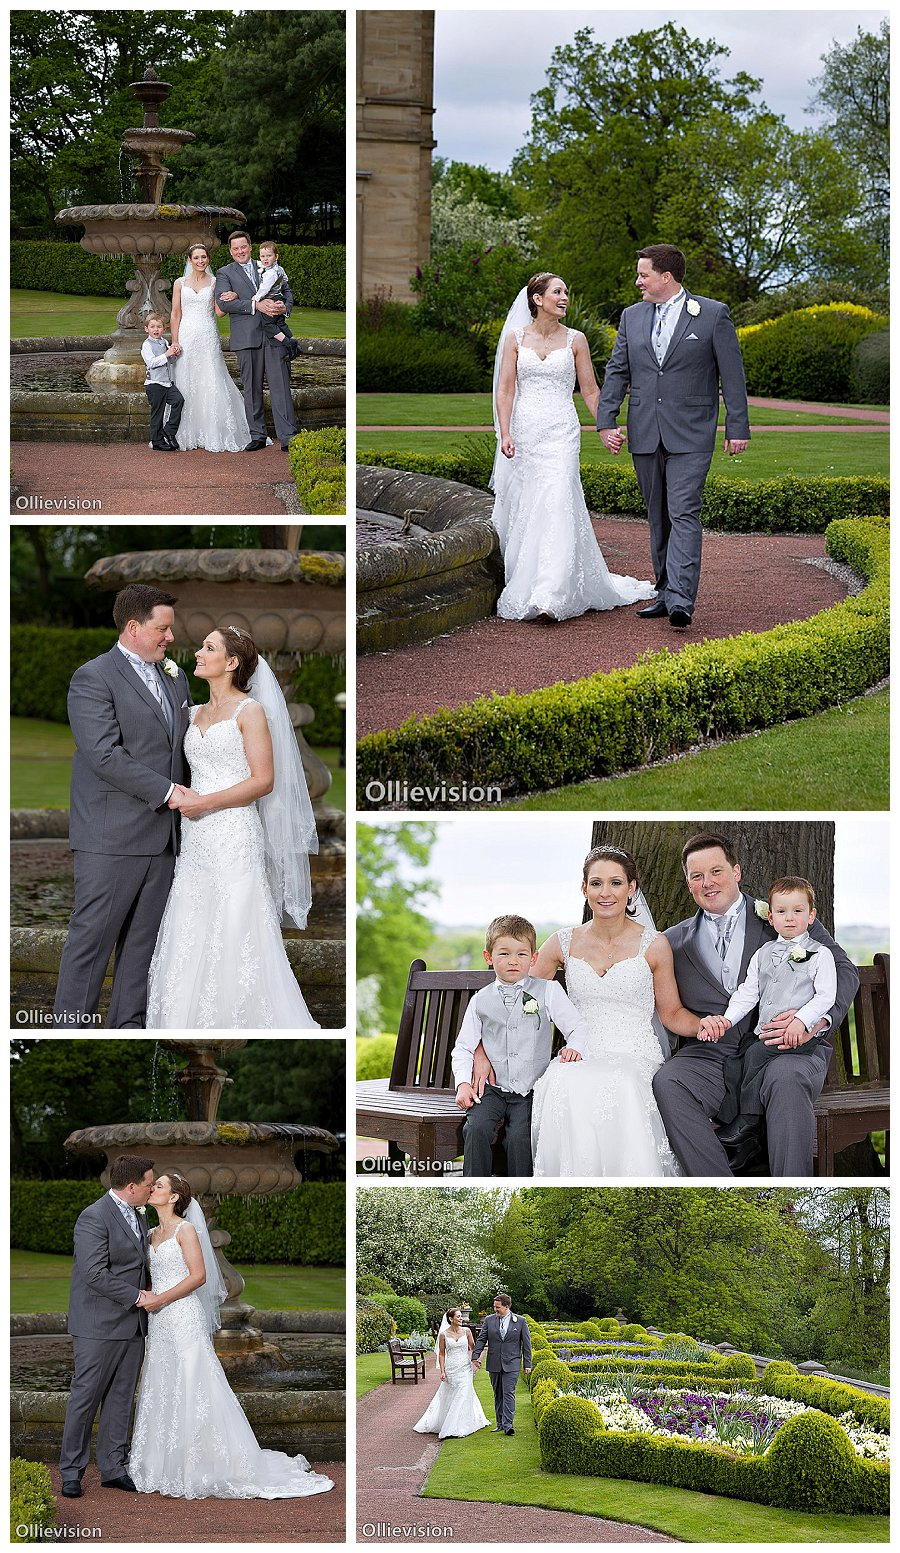 wedding photography Oulton Hall Hotel, gardens at Oulton hall hotel Yorkshire